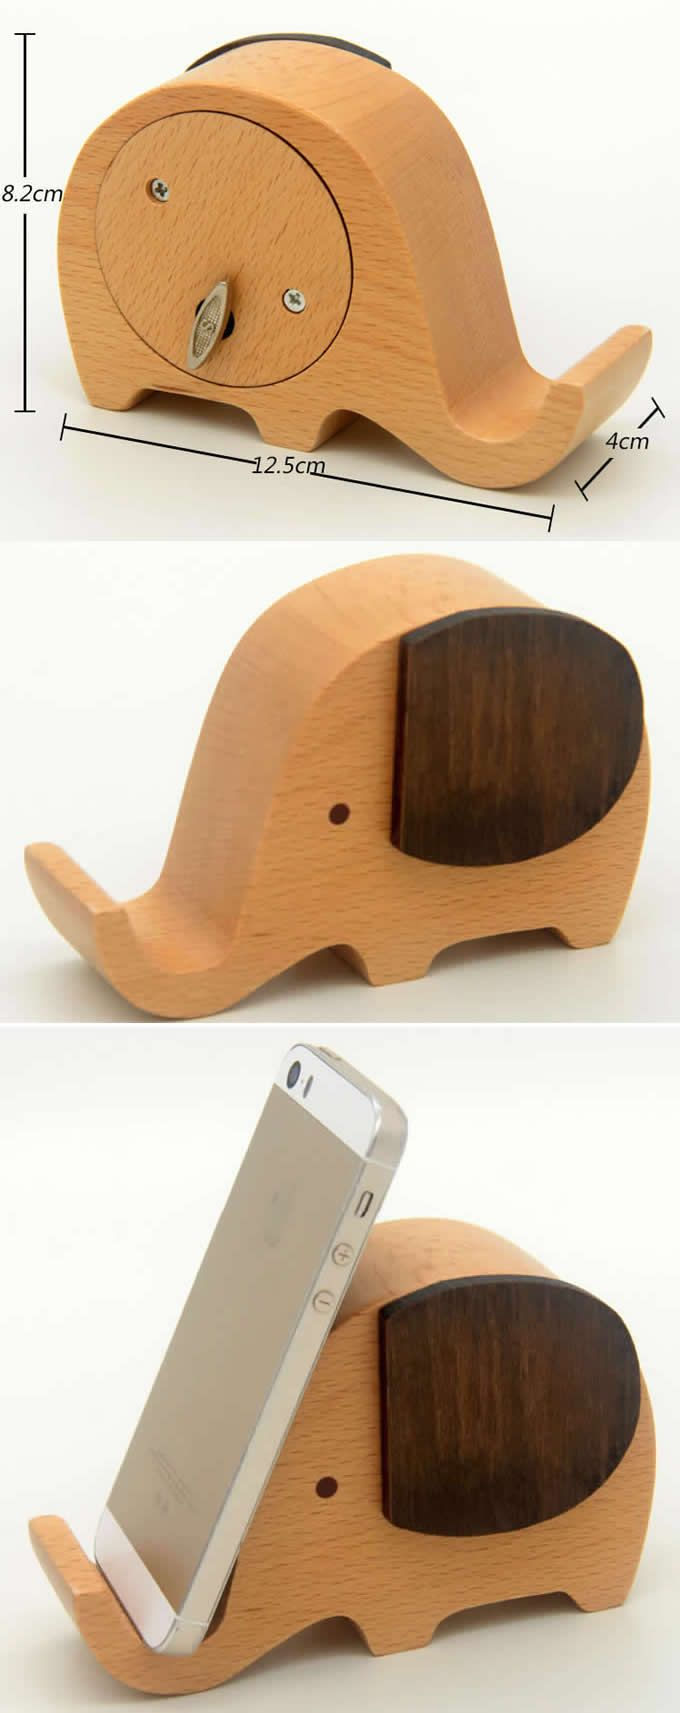 Wooden Elephant Music Box Mobile Phone Display Stand | Diy ...